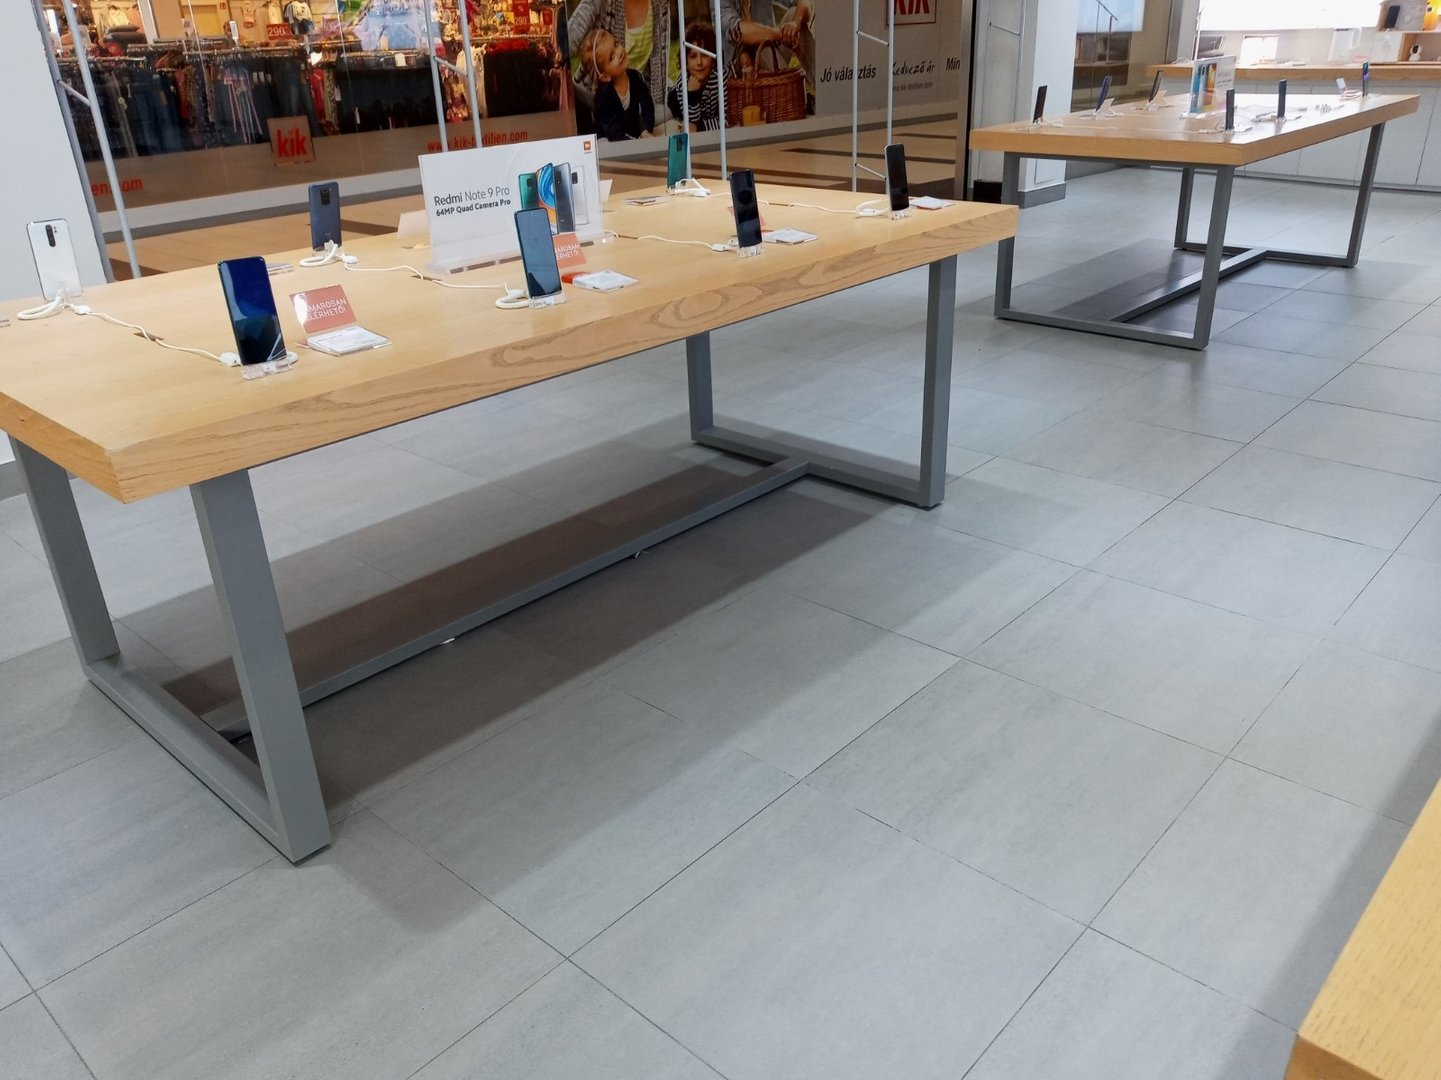 Indoor store space (retail space)